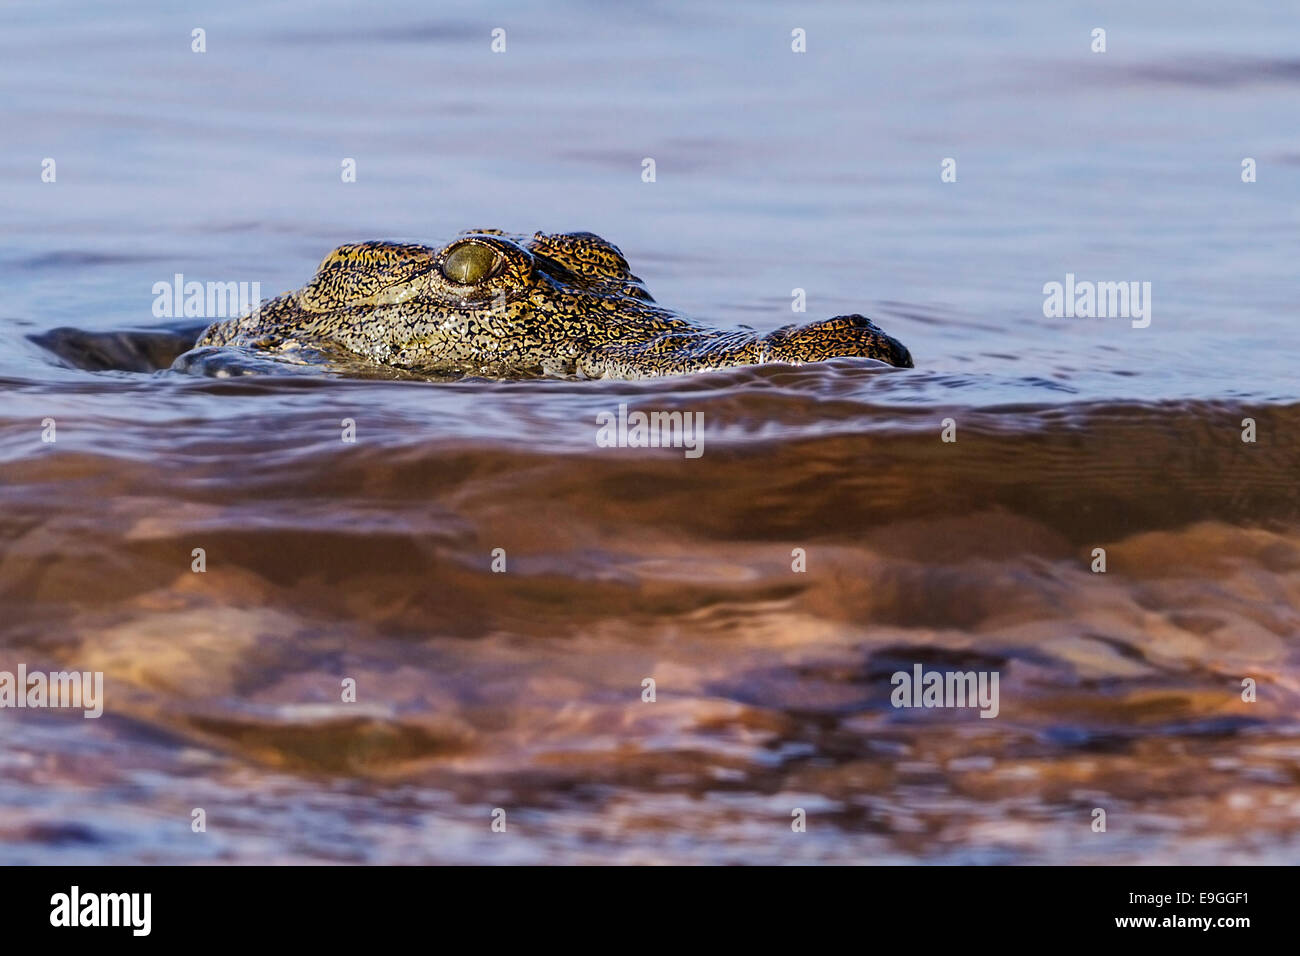 Close-up of Nile crocodile (Crocodylus niloticus) - Stock Image